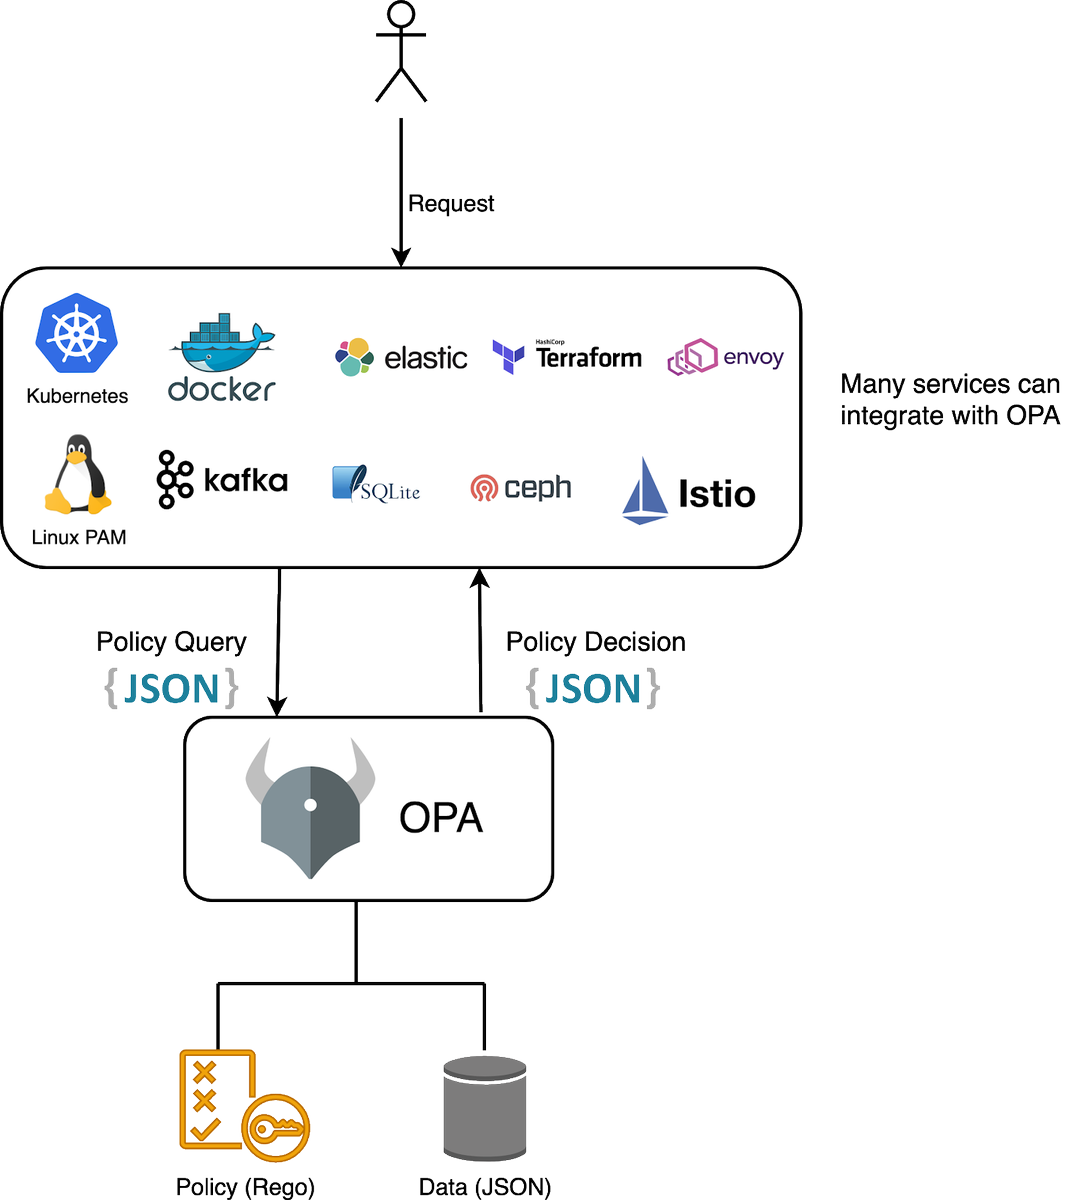 How to integrate OPA (Open Policy Agent) into your Kubernetes cluster using Kube-mgmt bit.ly/3gSdjP4